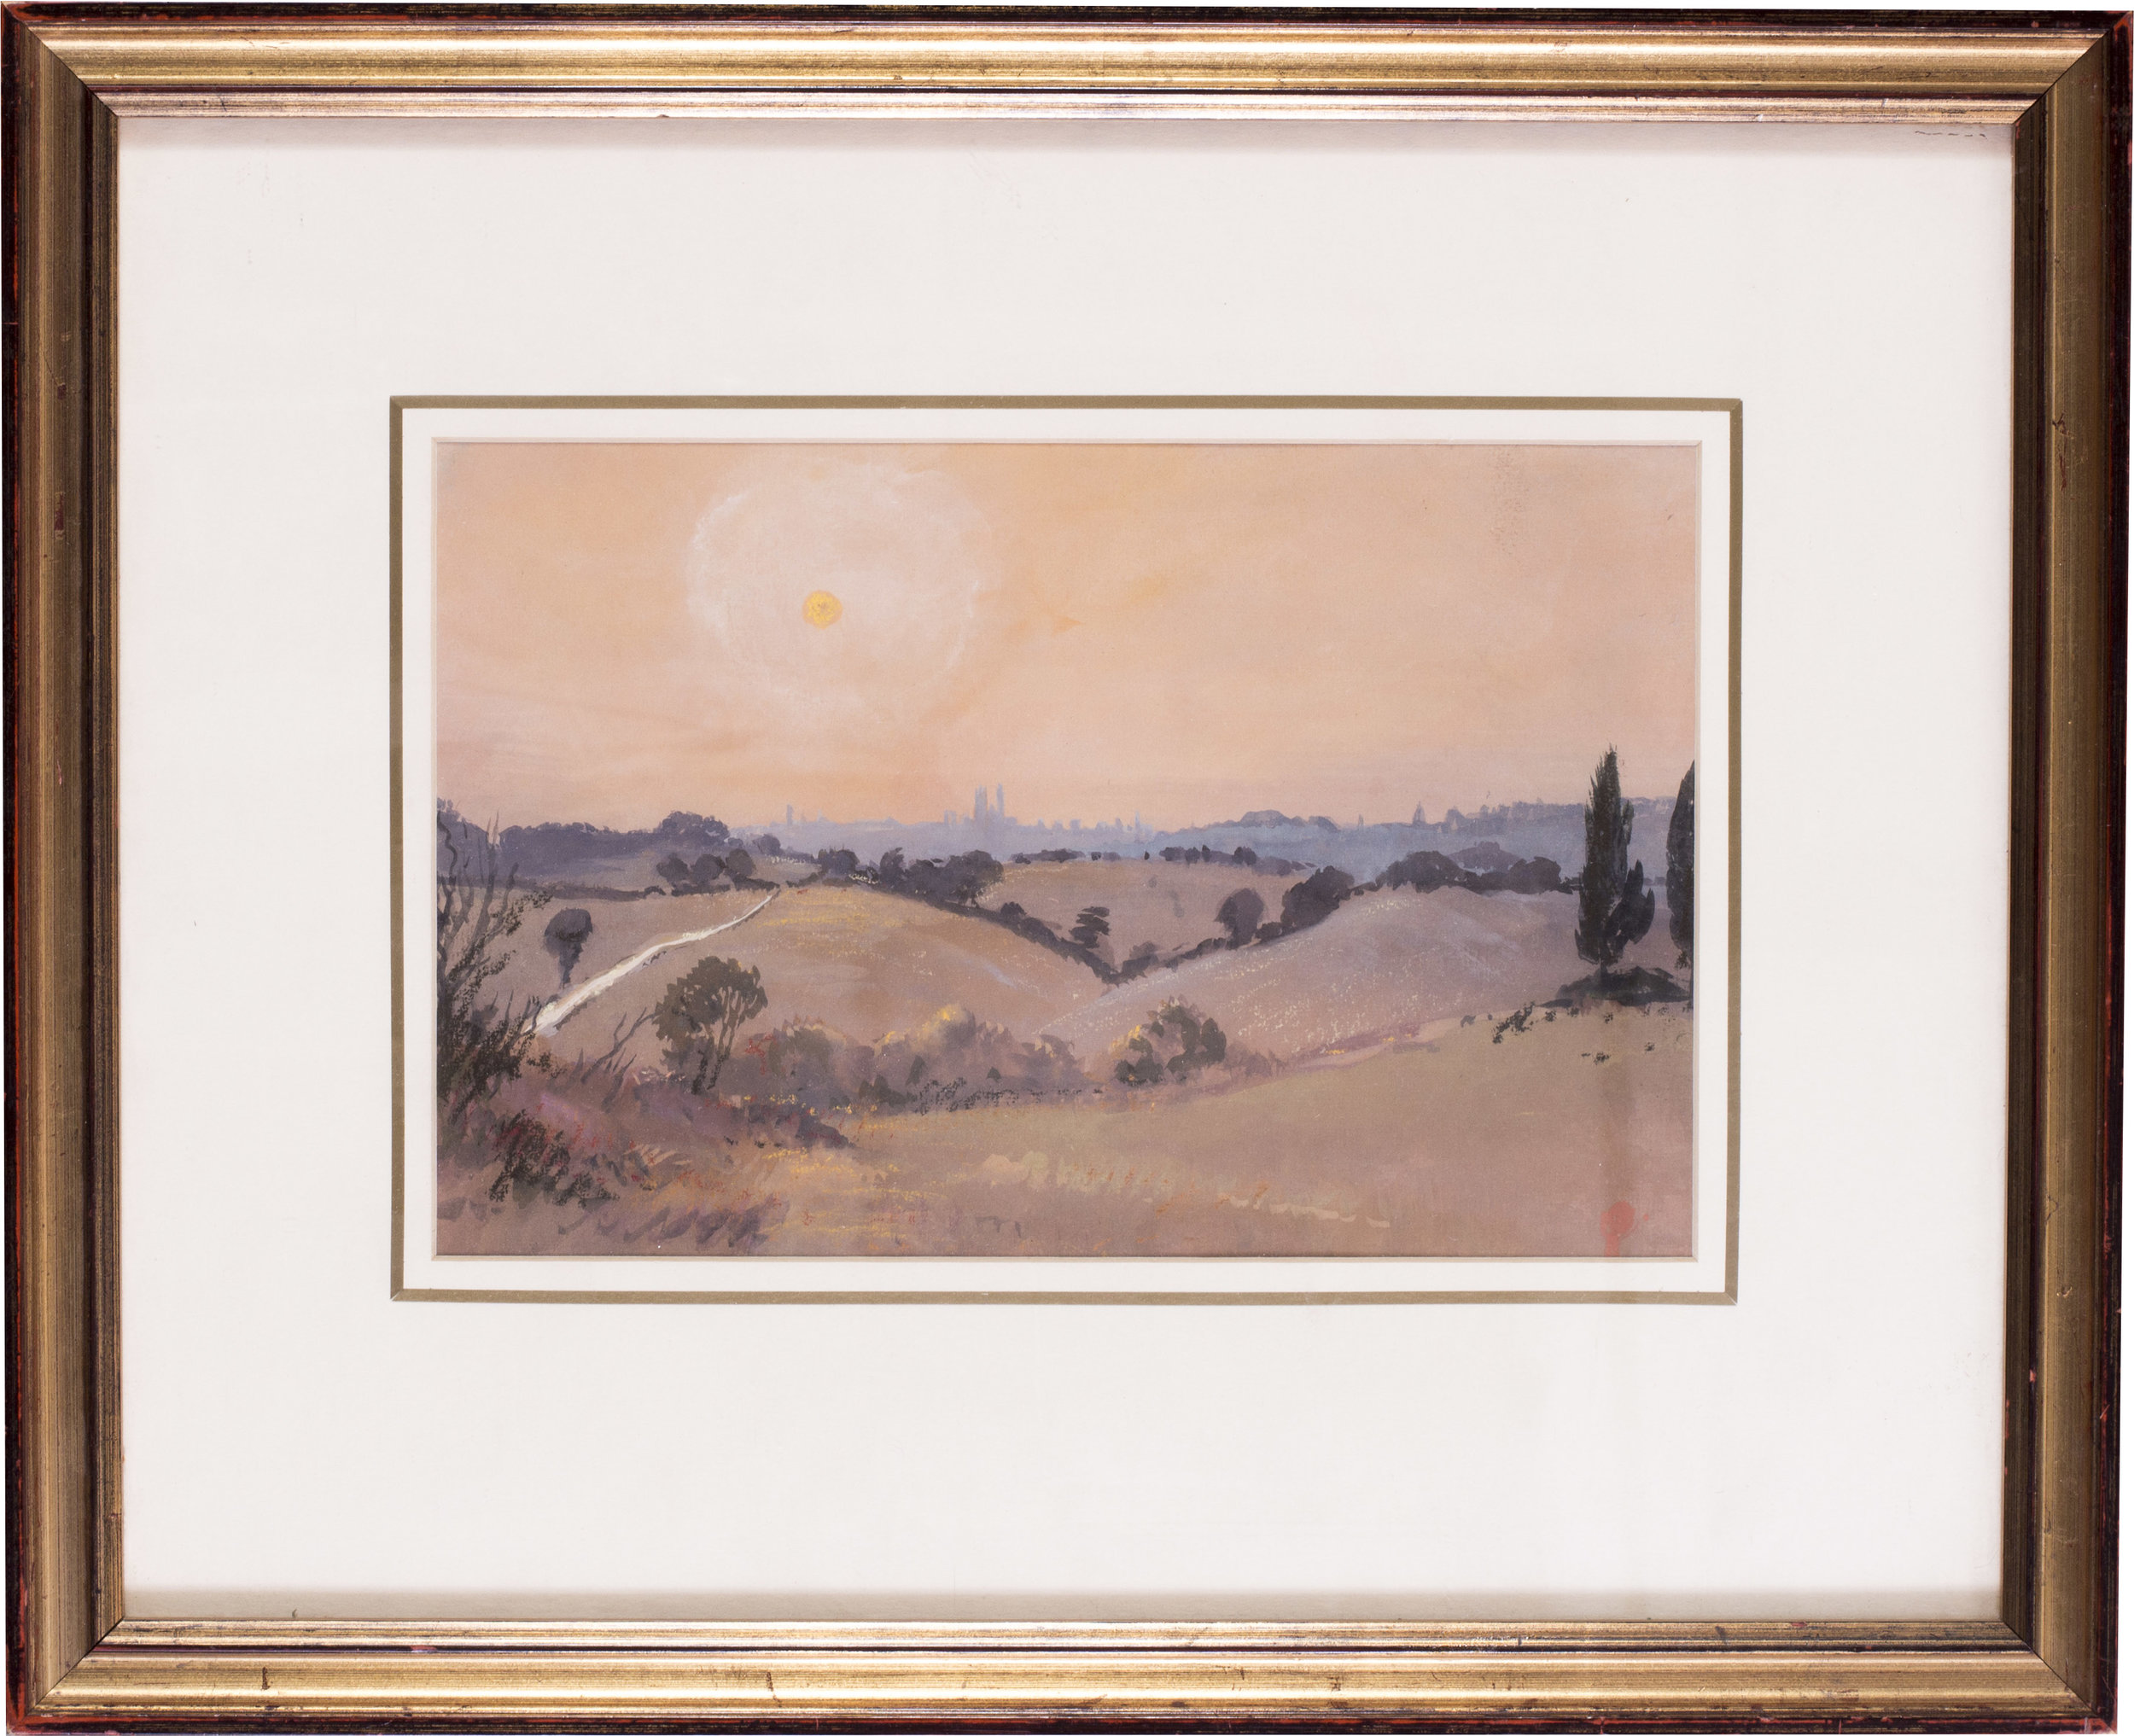 Sunset, Sienna , circa 1986   Acrylic and watercolour on paper   7.3/8 x 11.1/2 in. (18.8 x 29.5 cm.)   Provenance: The Catto Gallery, London   Price: £400